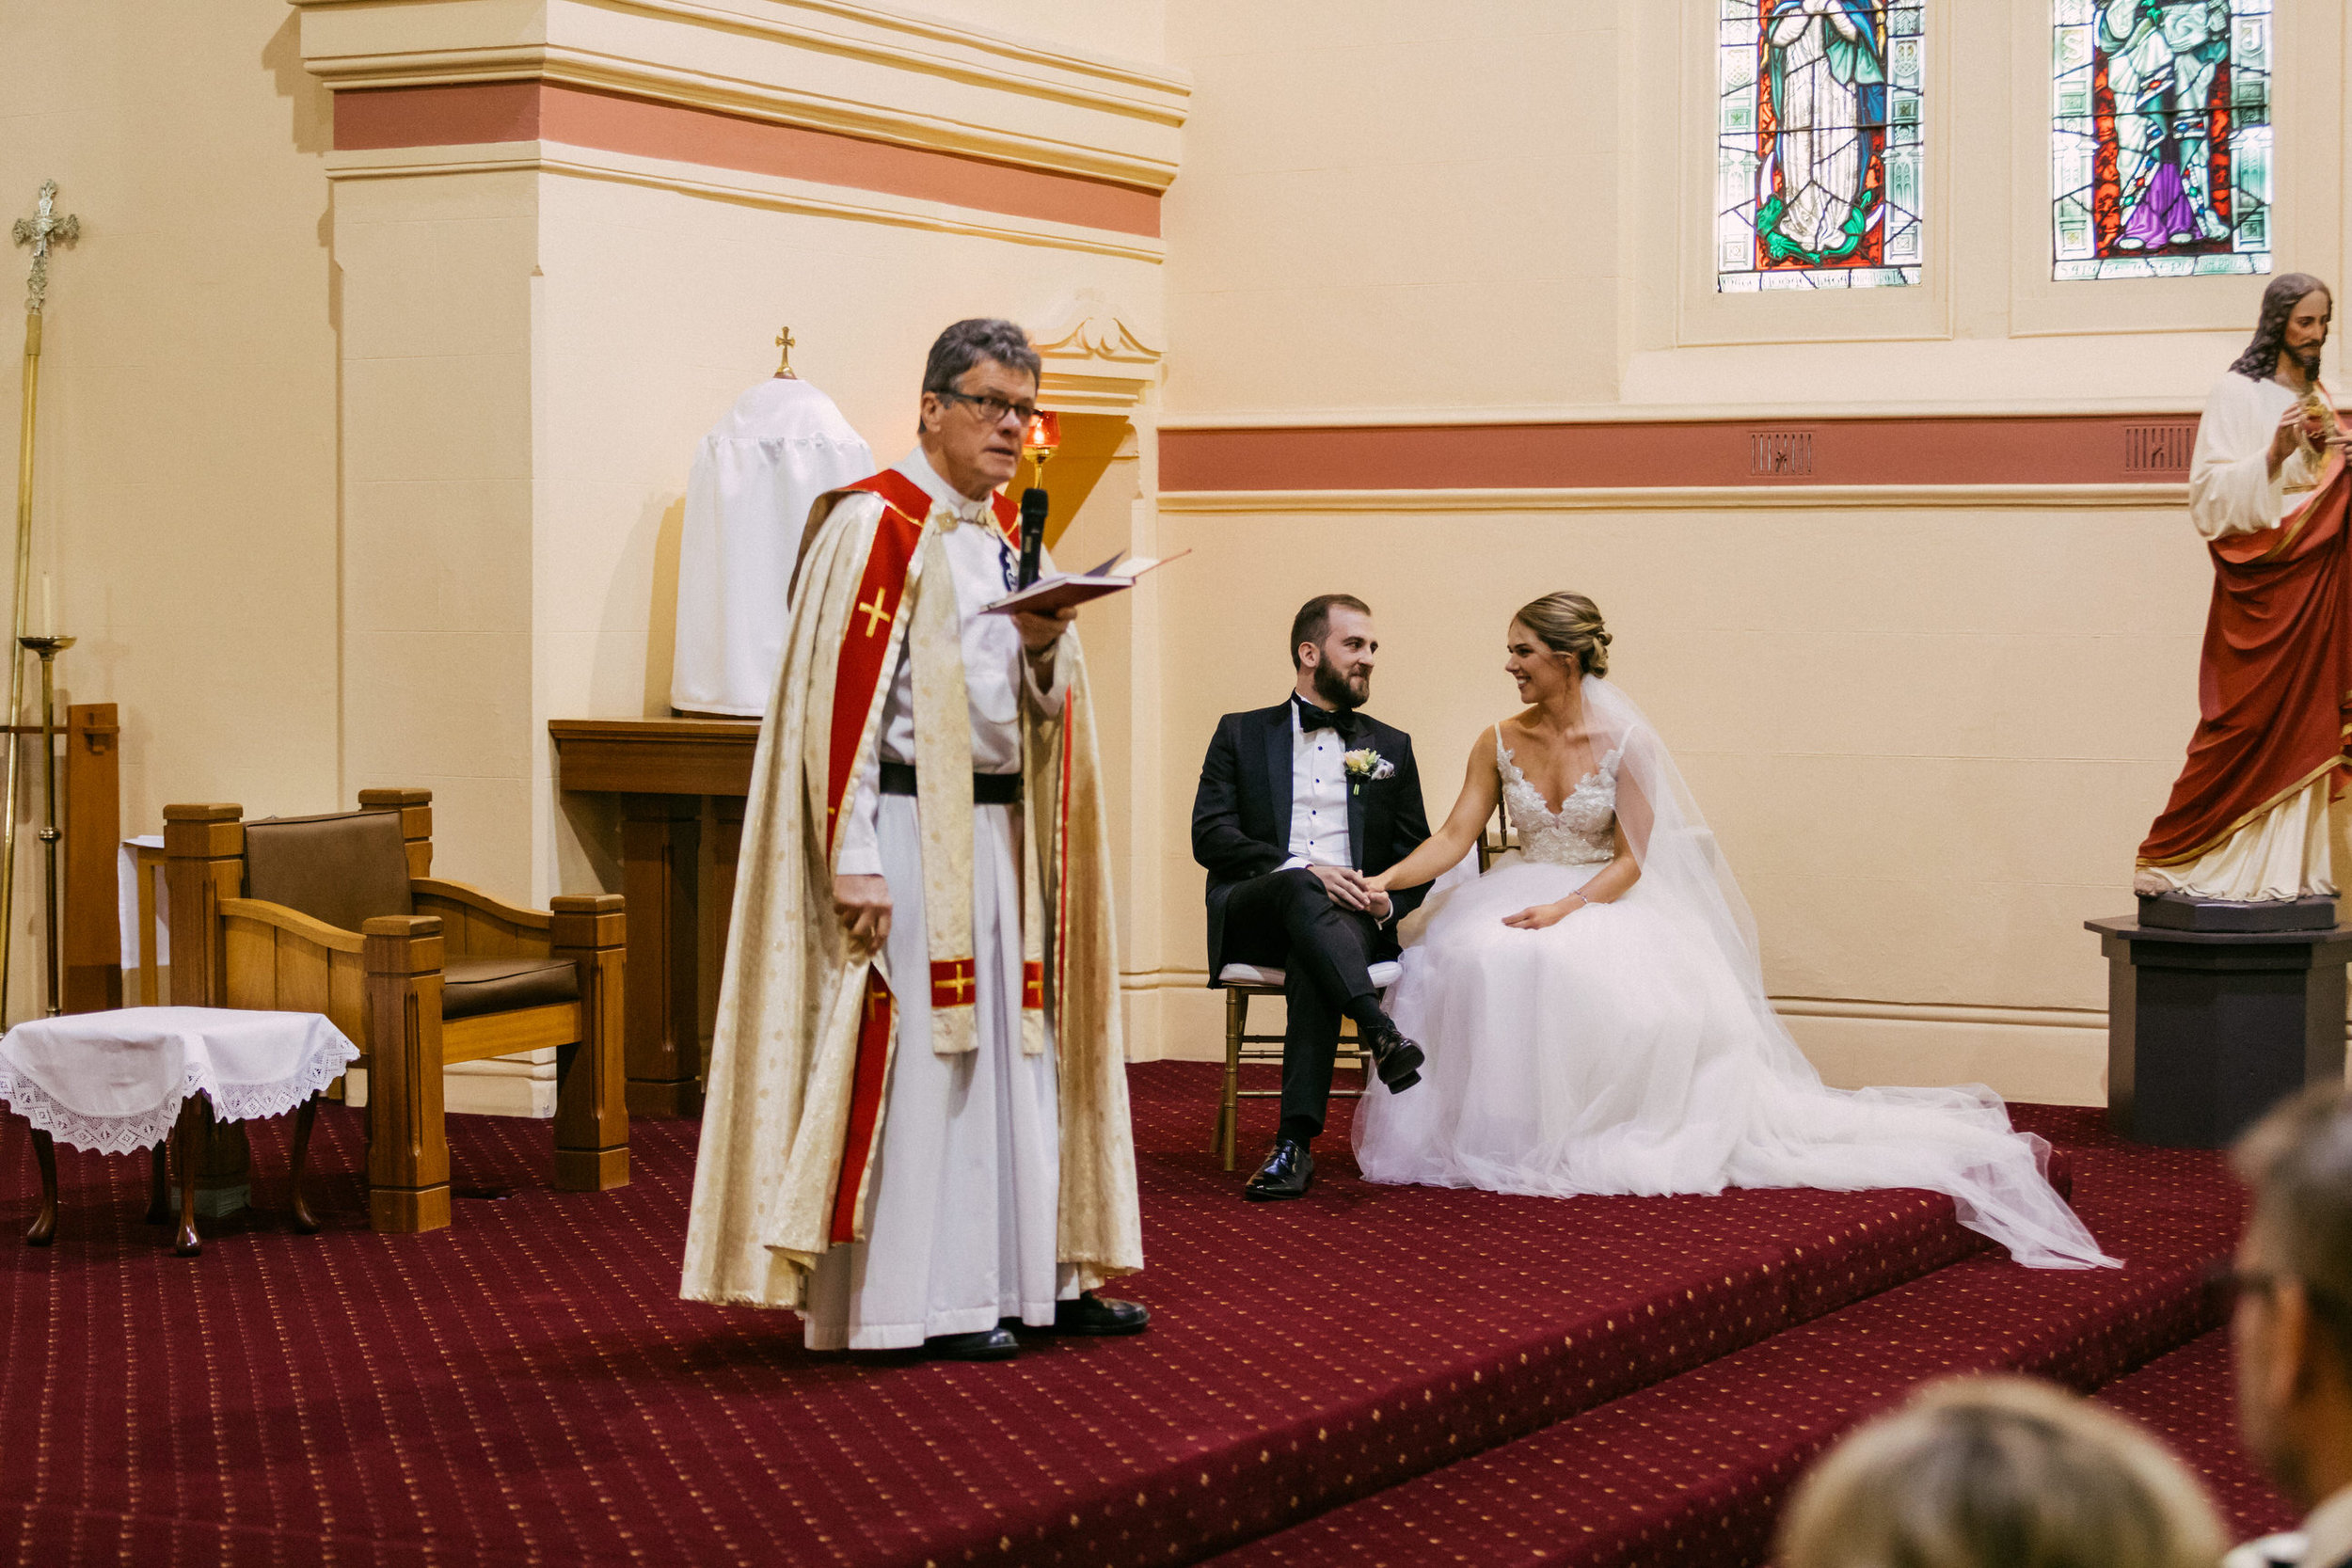 Adelaide Wedding 2019 060.jpg